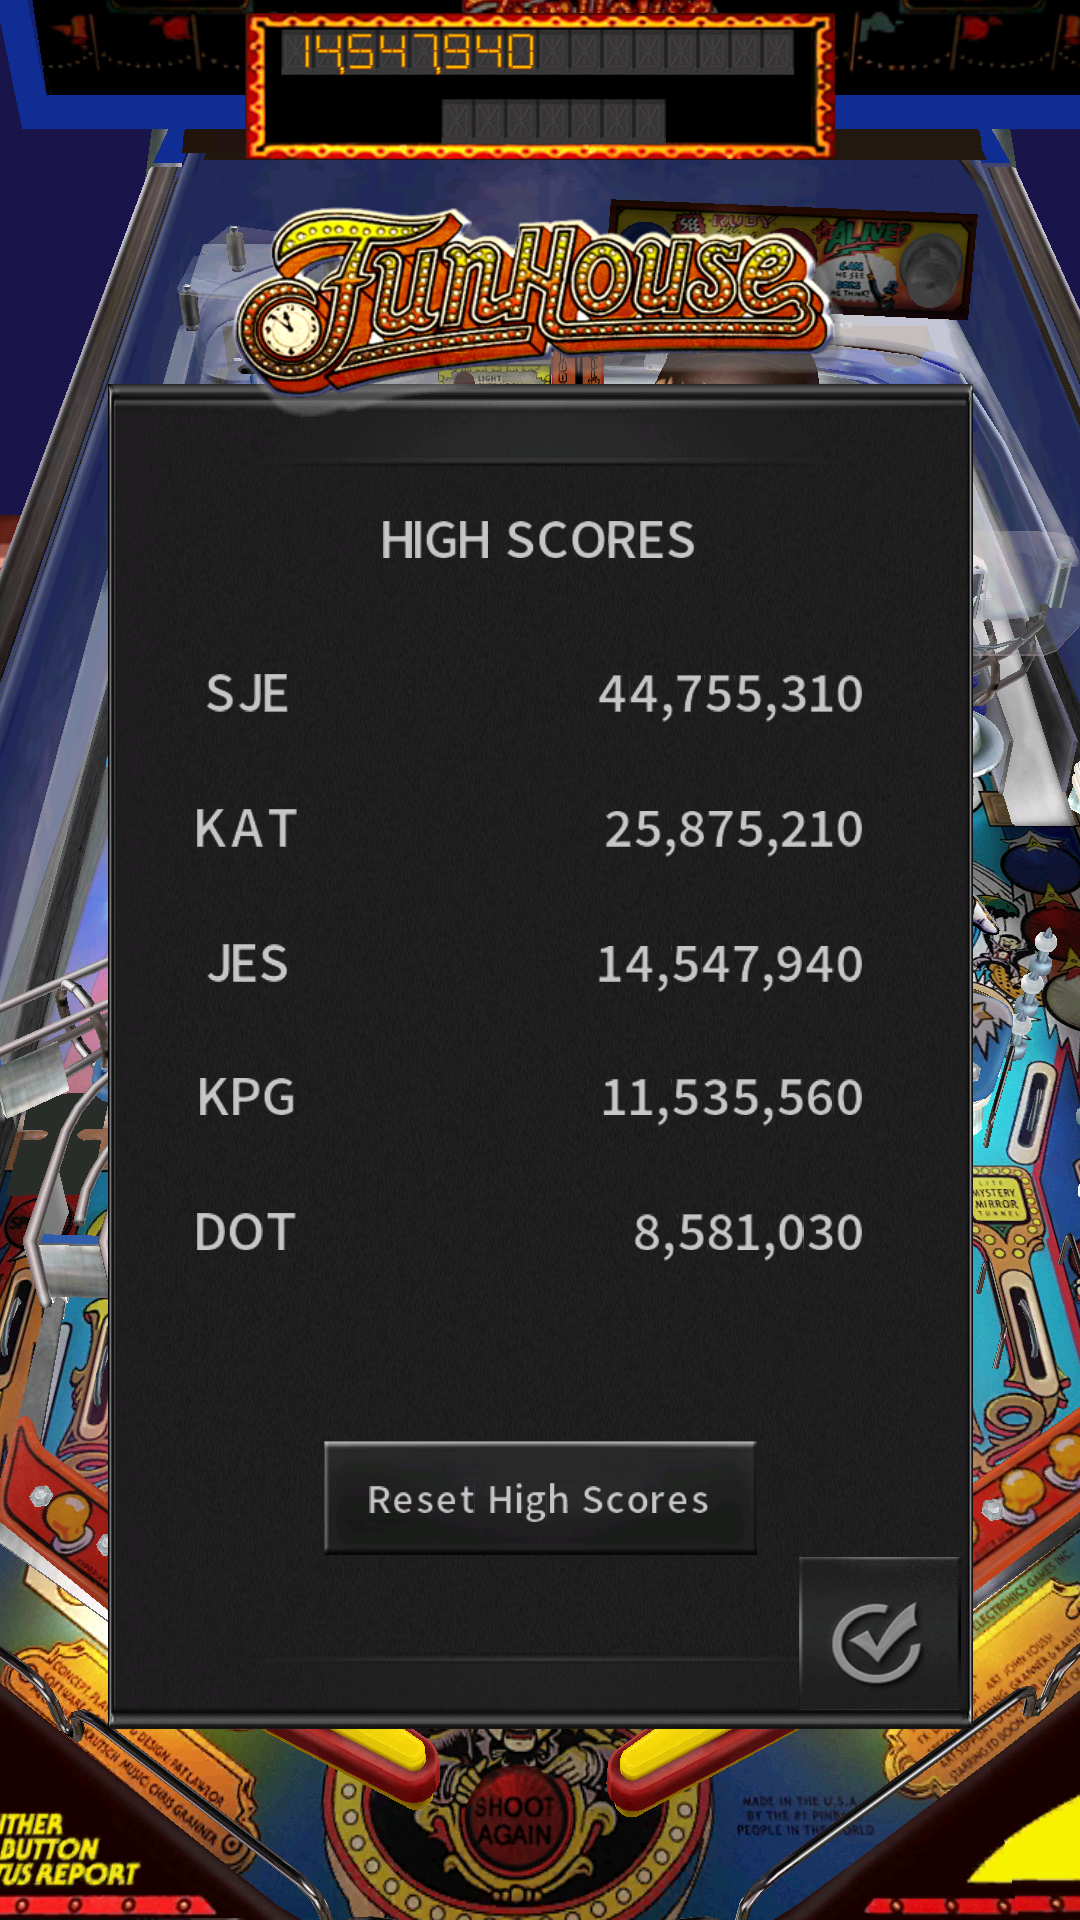 JES: Pinball Arcade: Funhouse (Android) 14,547,940 points on 2017-03-16 02:23:43